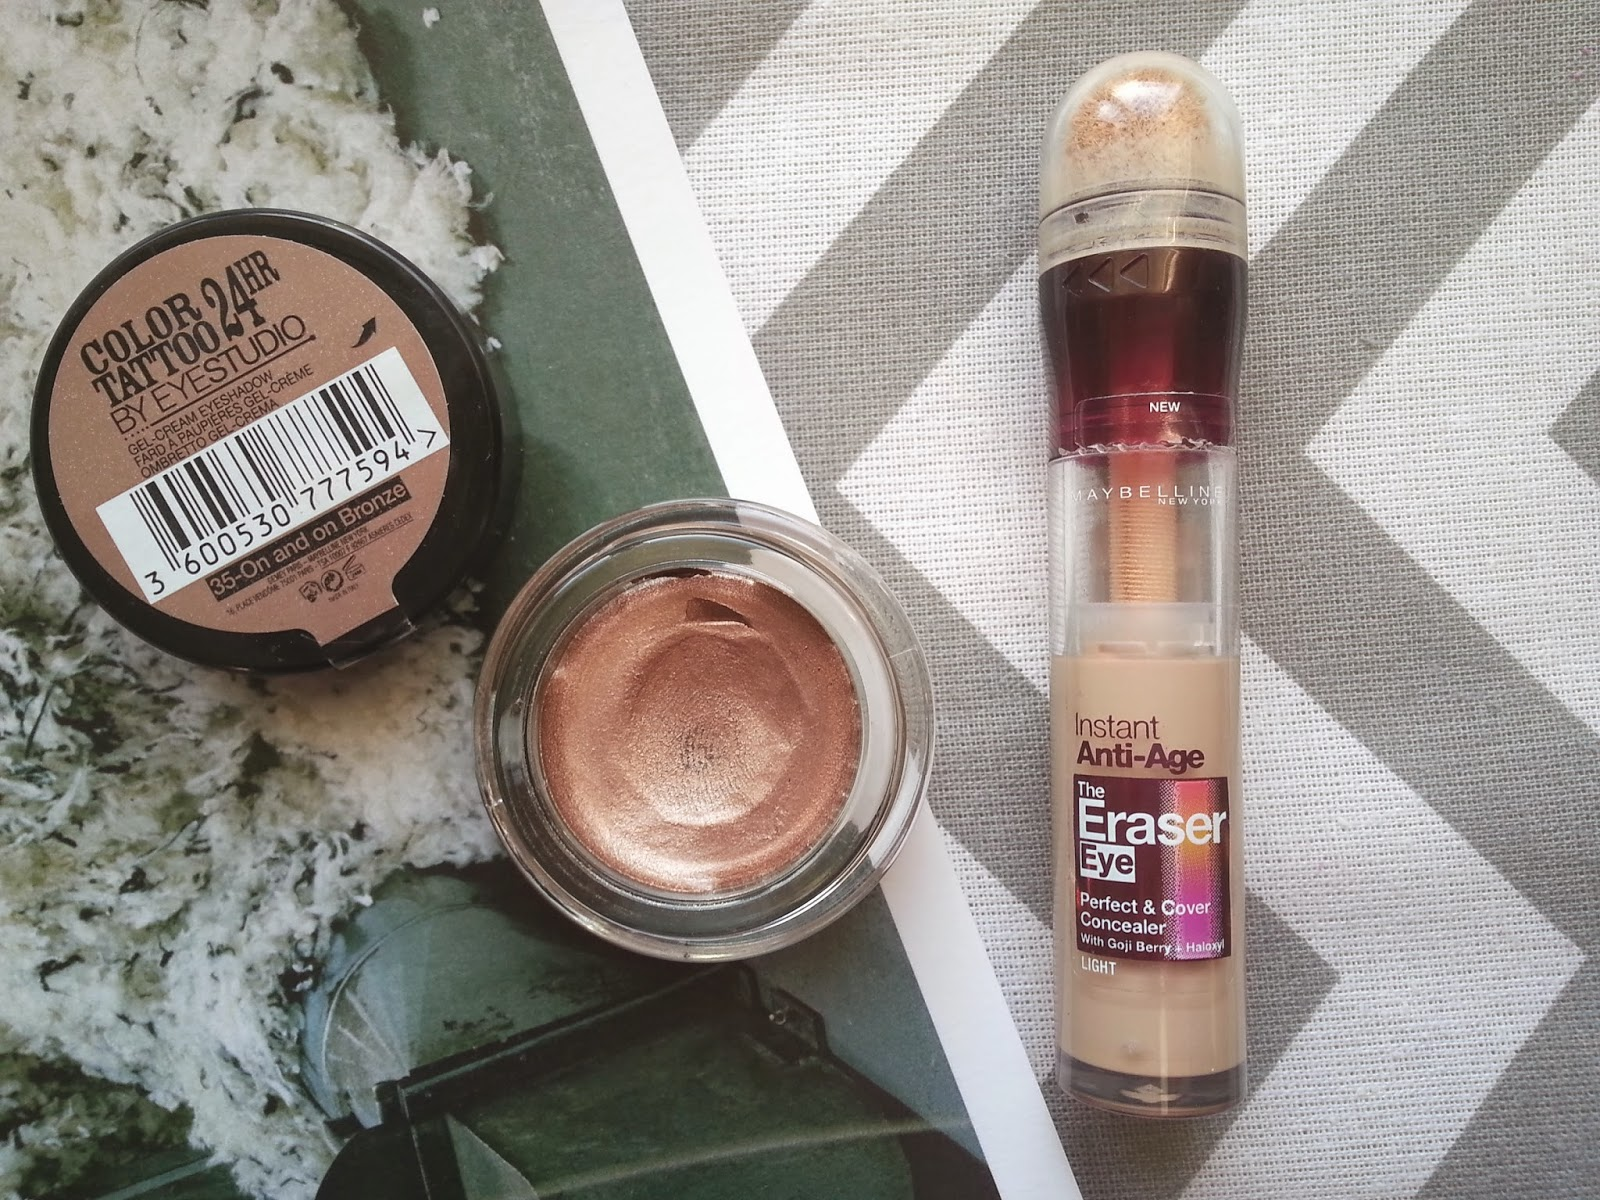 Maybelline On and On Bronze Color Tattoo Eraser Eye Concealer Review